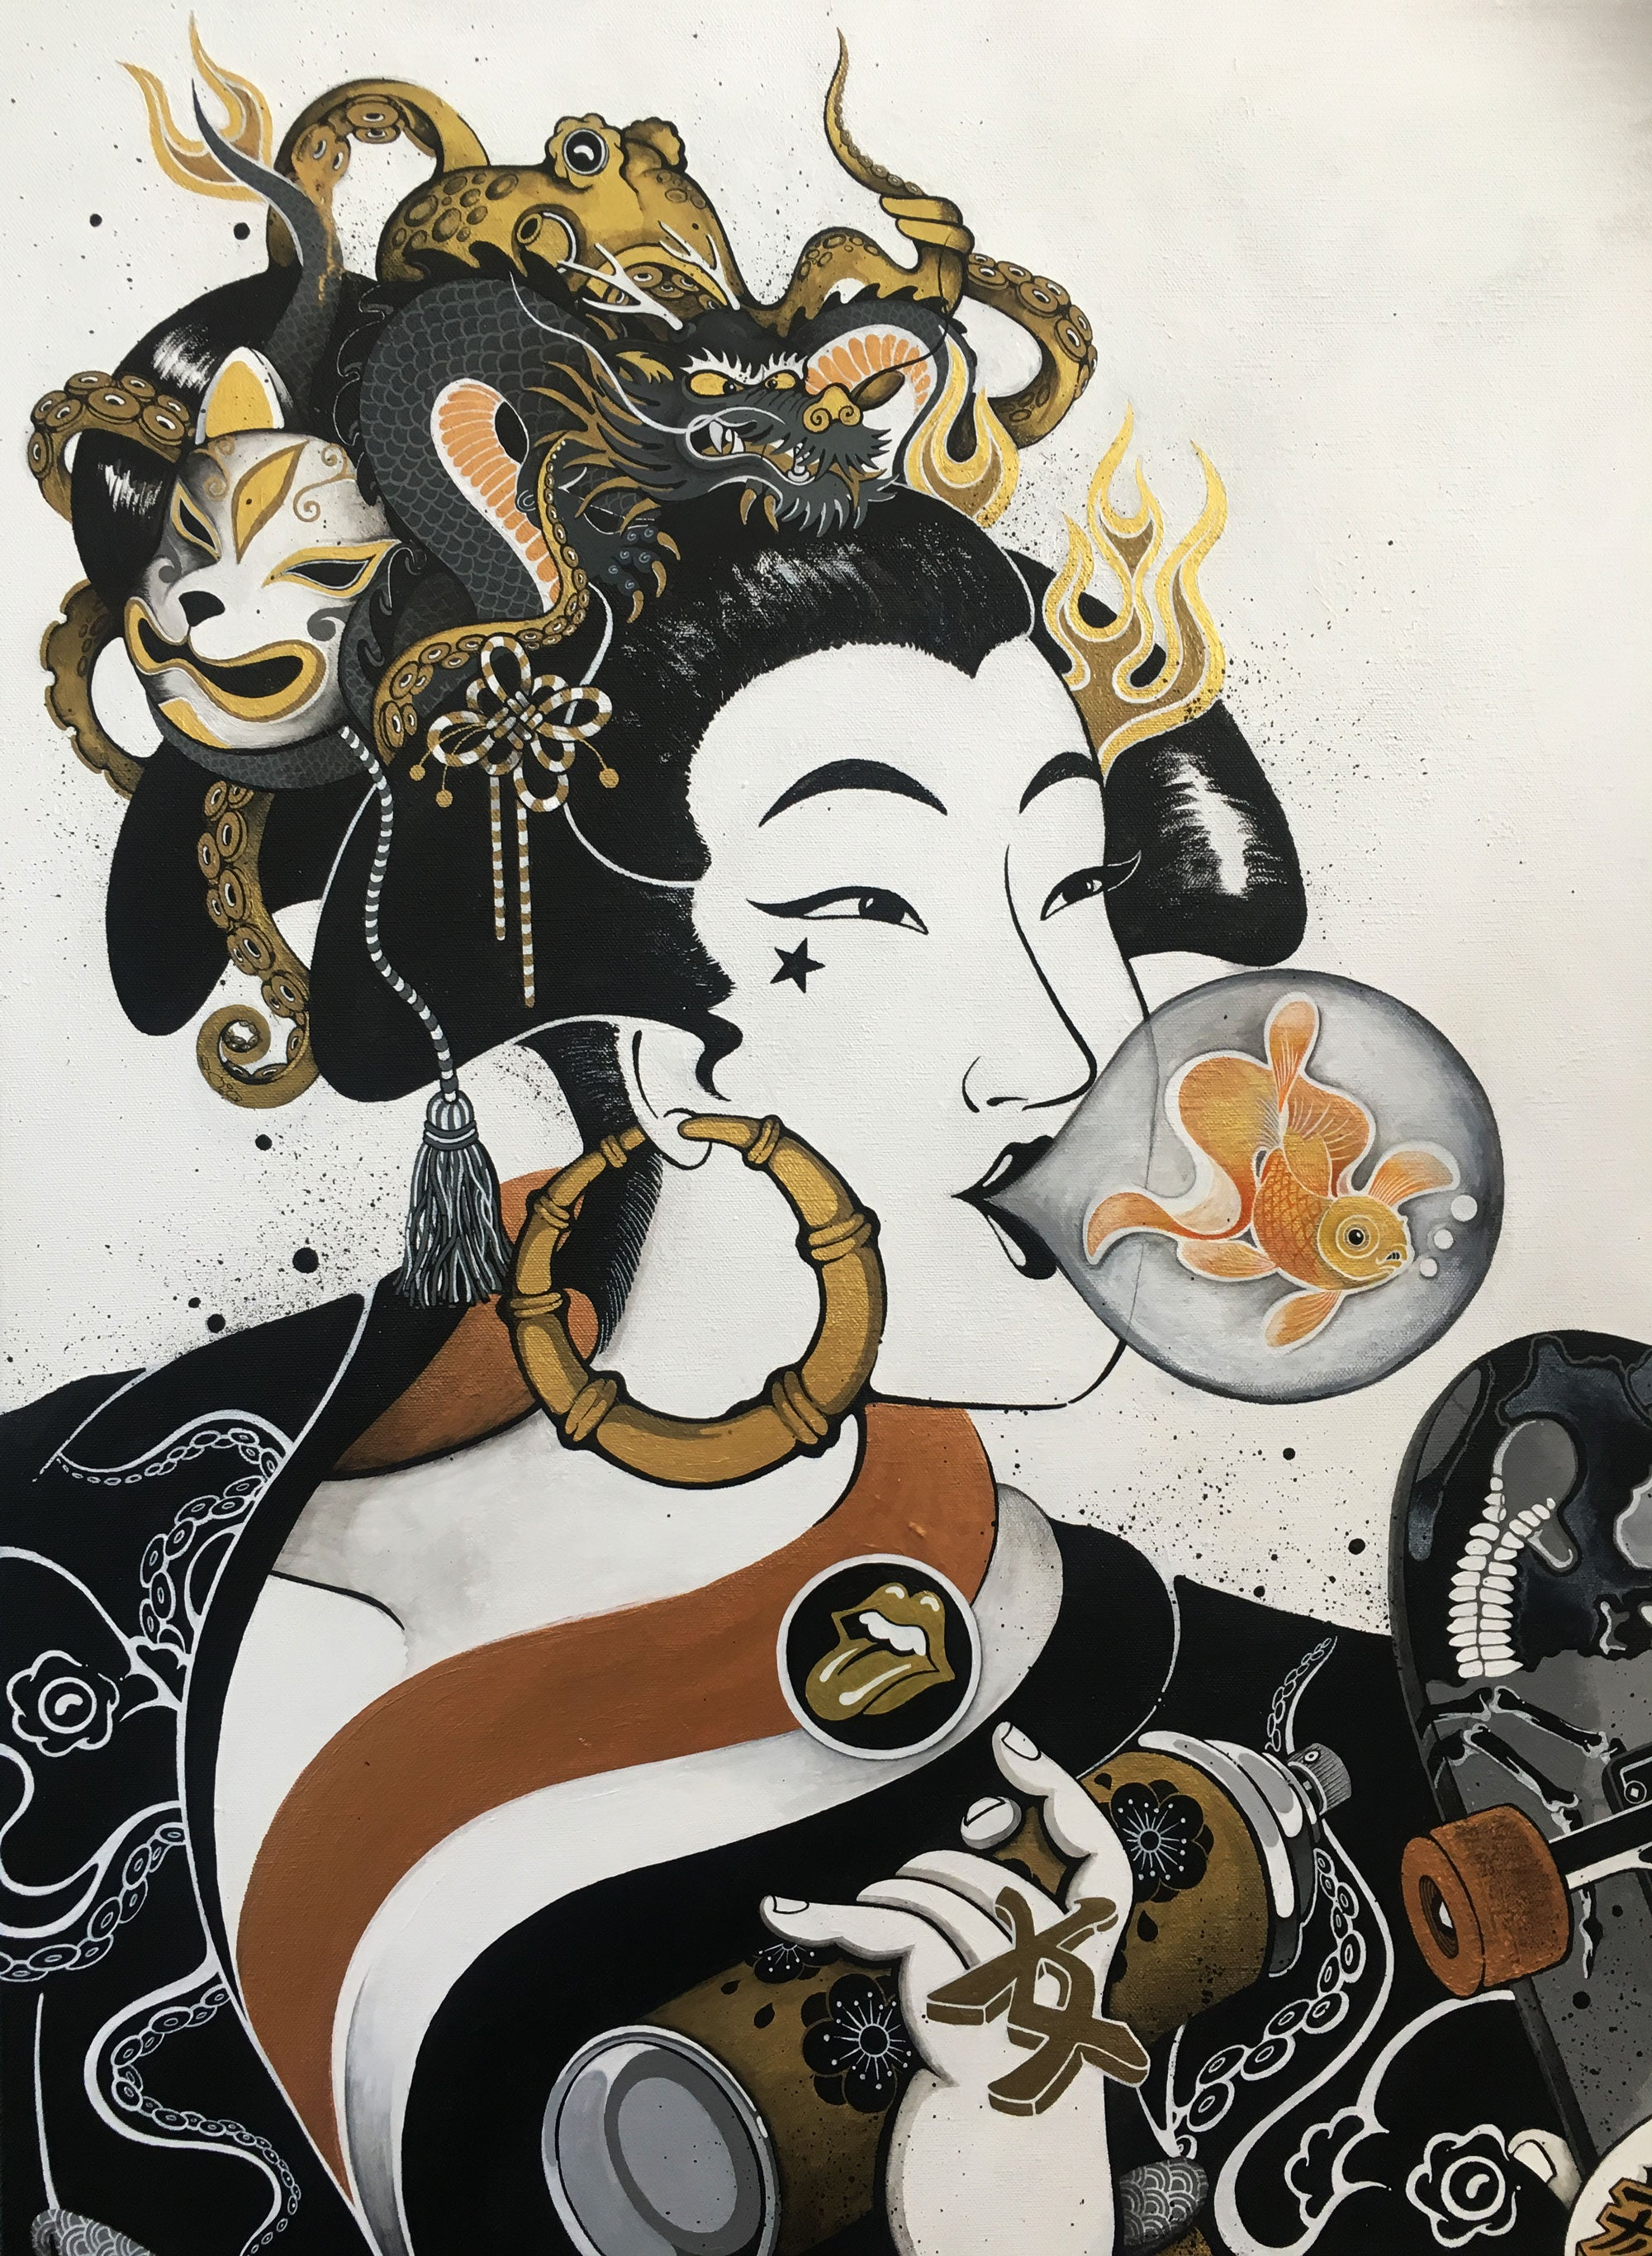 Onna-Bugeisha (Female Warrior)